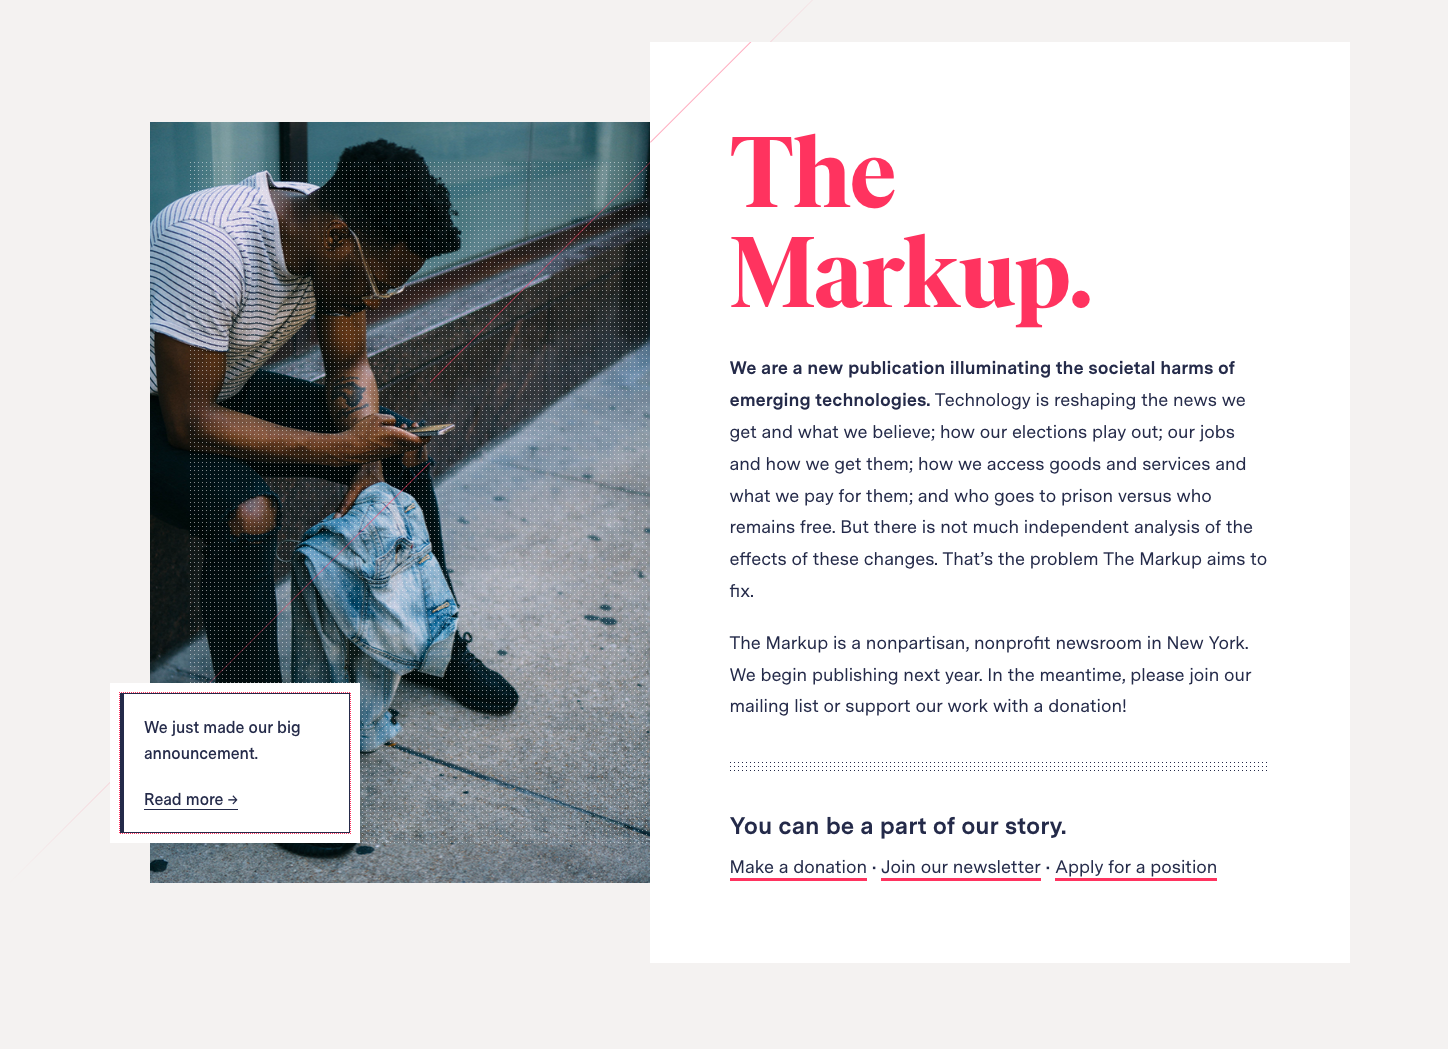 The Markup's homepage with text and a picture of a man sitting and looking at his mobile phone